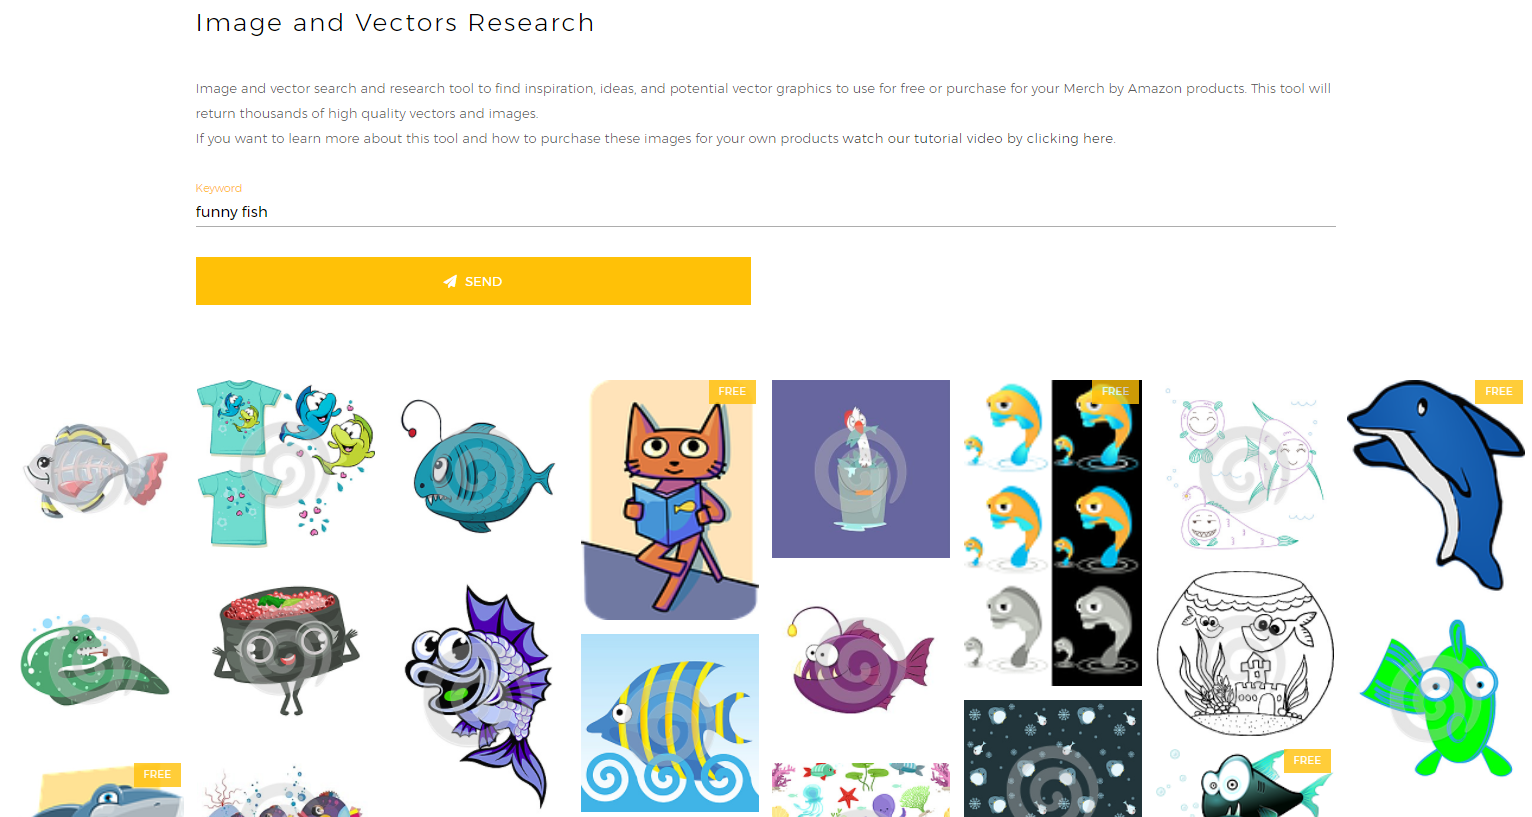 Merch by Amazon Image and Vectors Research Tool